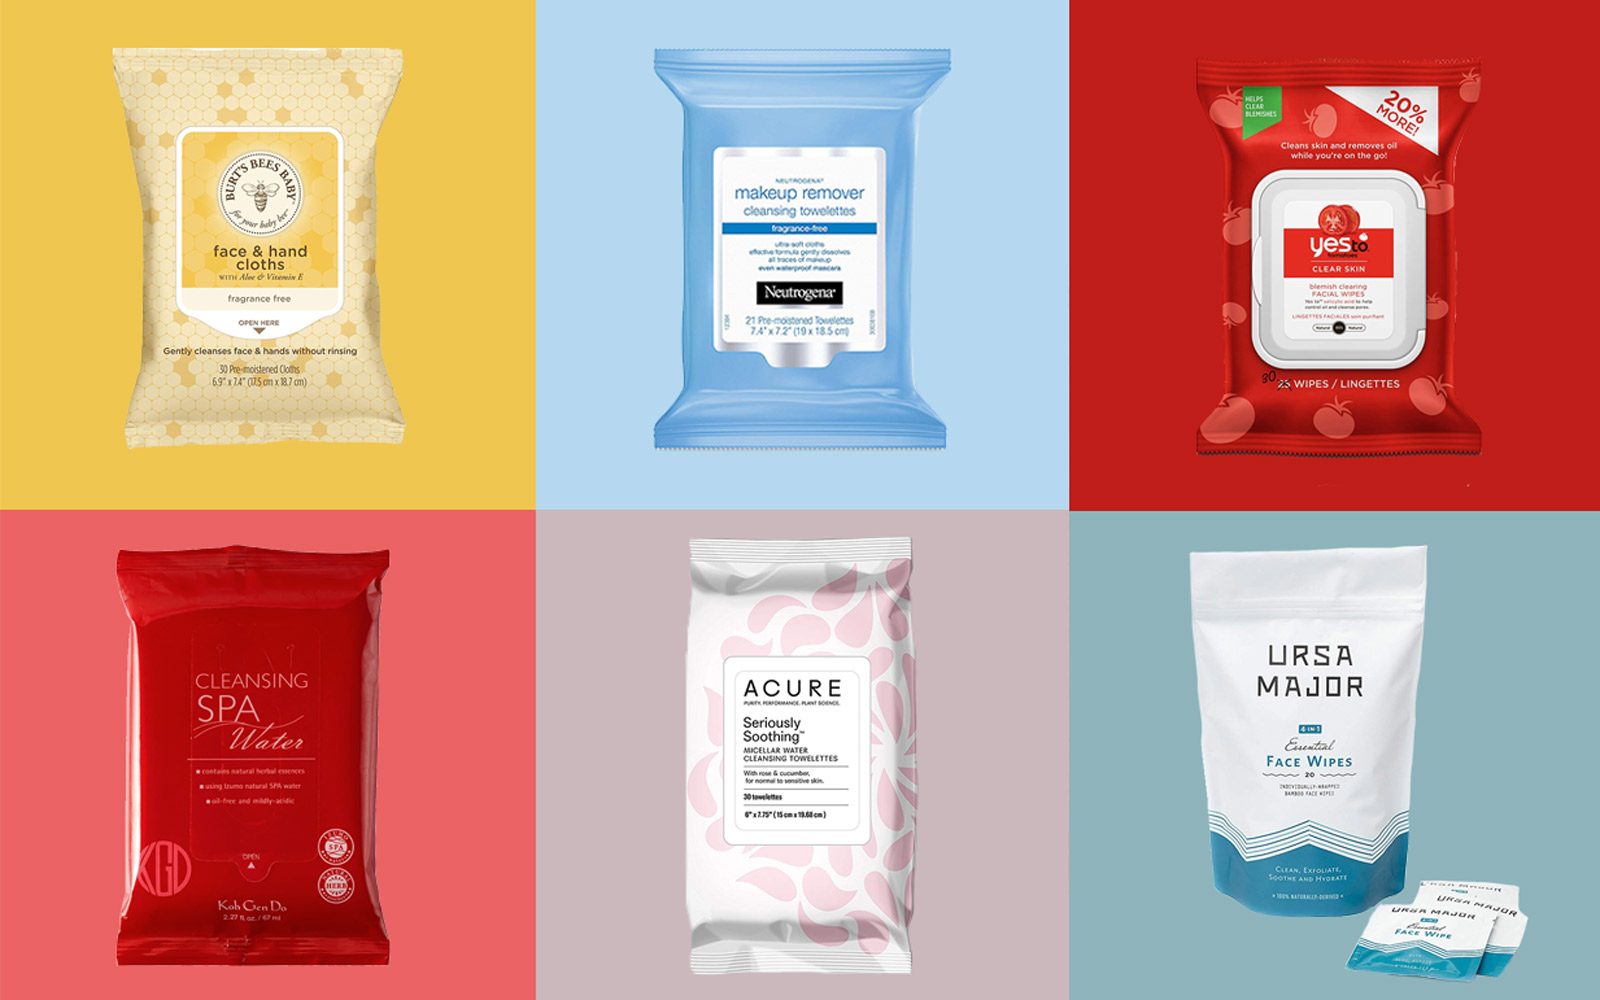 The Best Makeup Remover Wipes for Travel